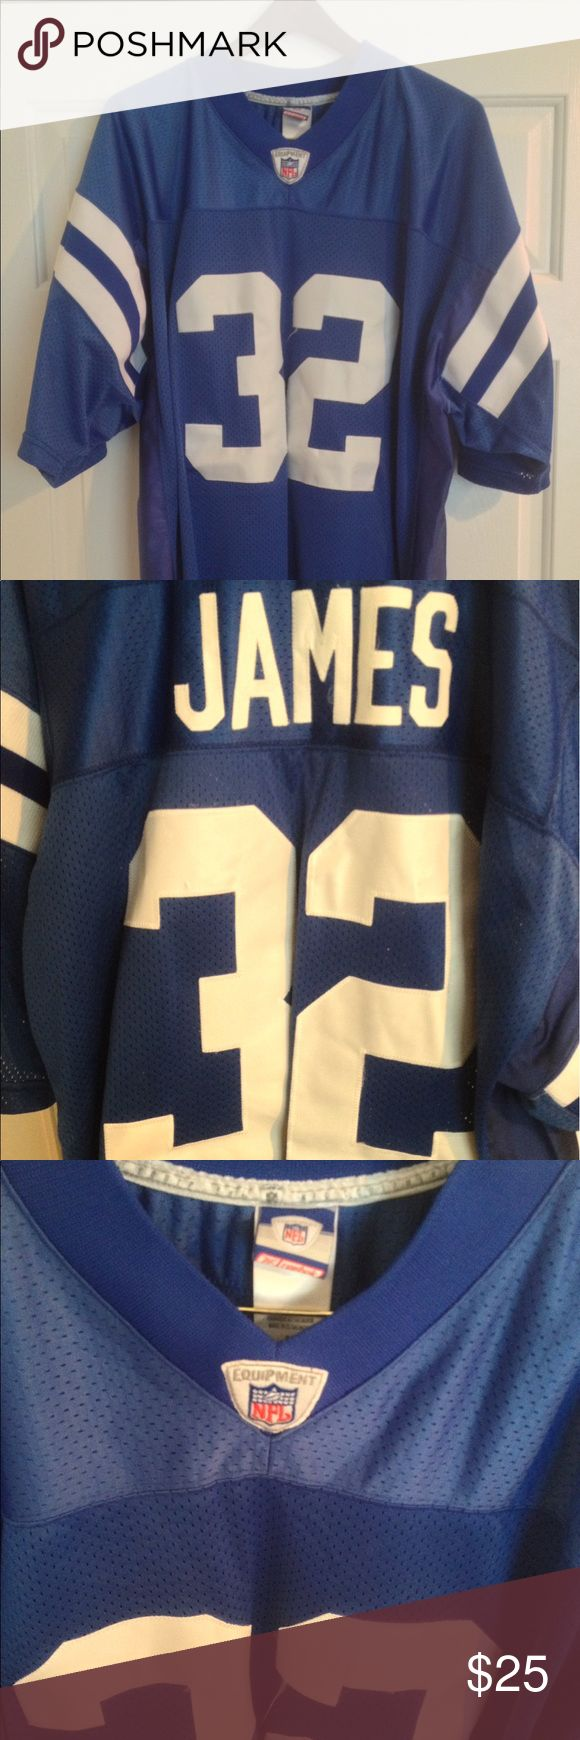 Reebok Indianapolis Colts Edgerrin James Jersey On Field Jersey • Sewn Letters/Numbers • Excellent Condition • Size 54 Reebok Shirts Tees - Short Sleeve